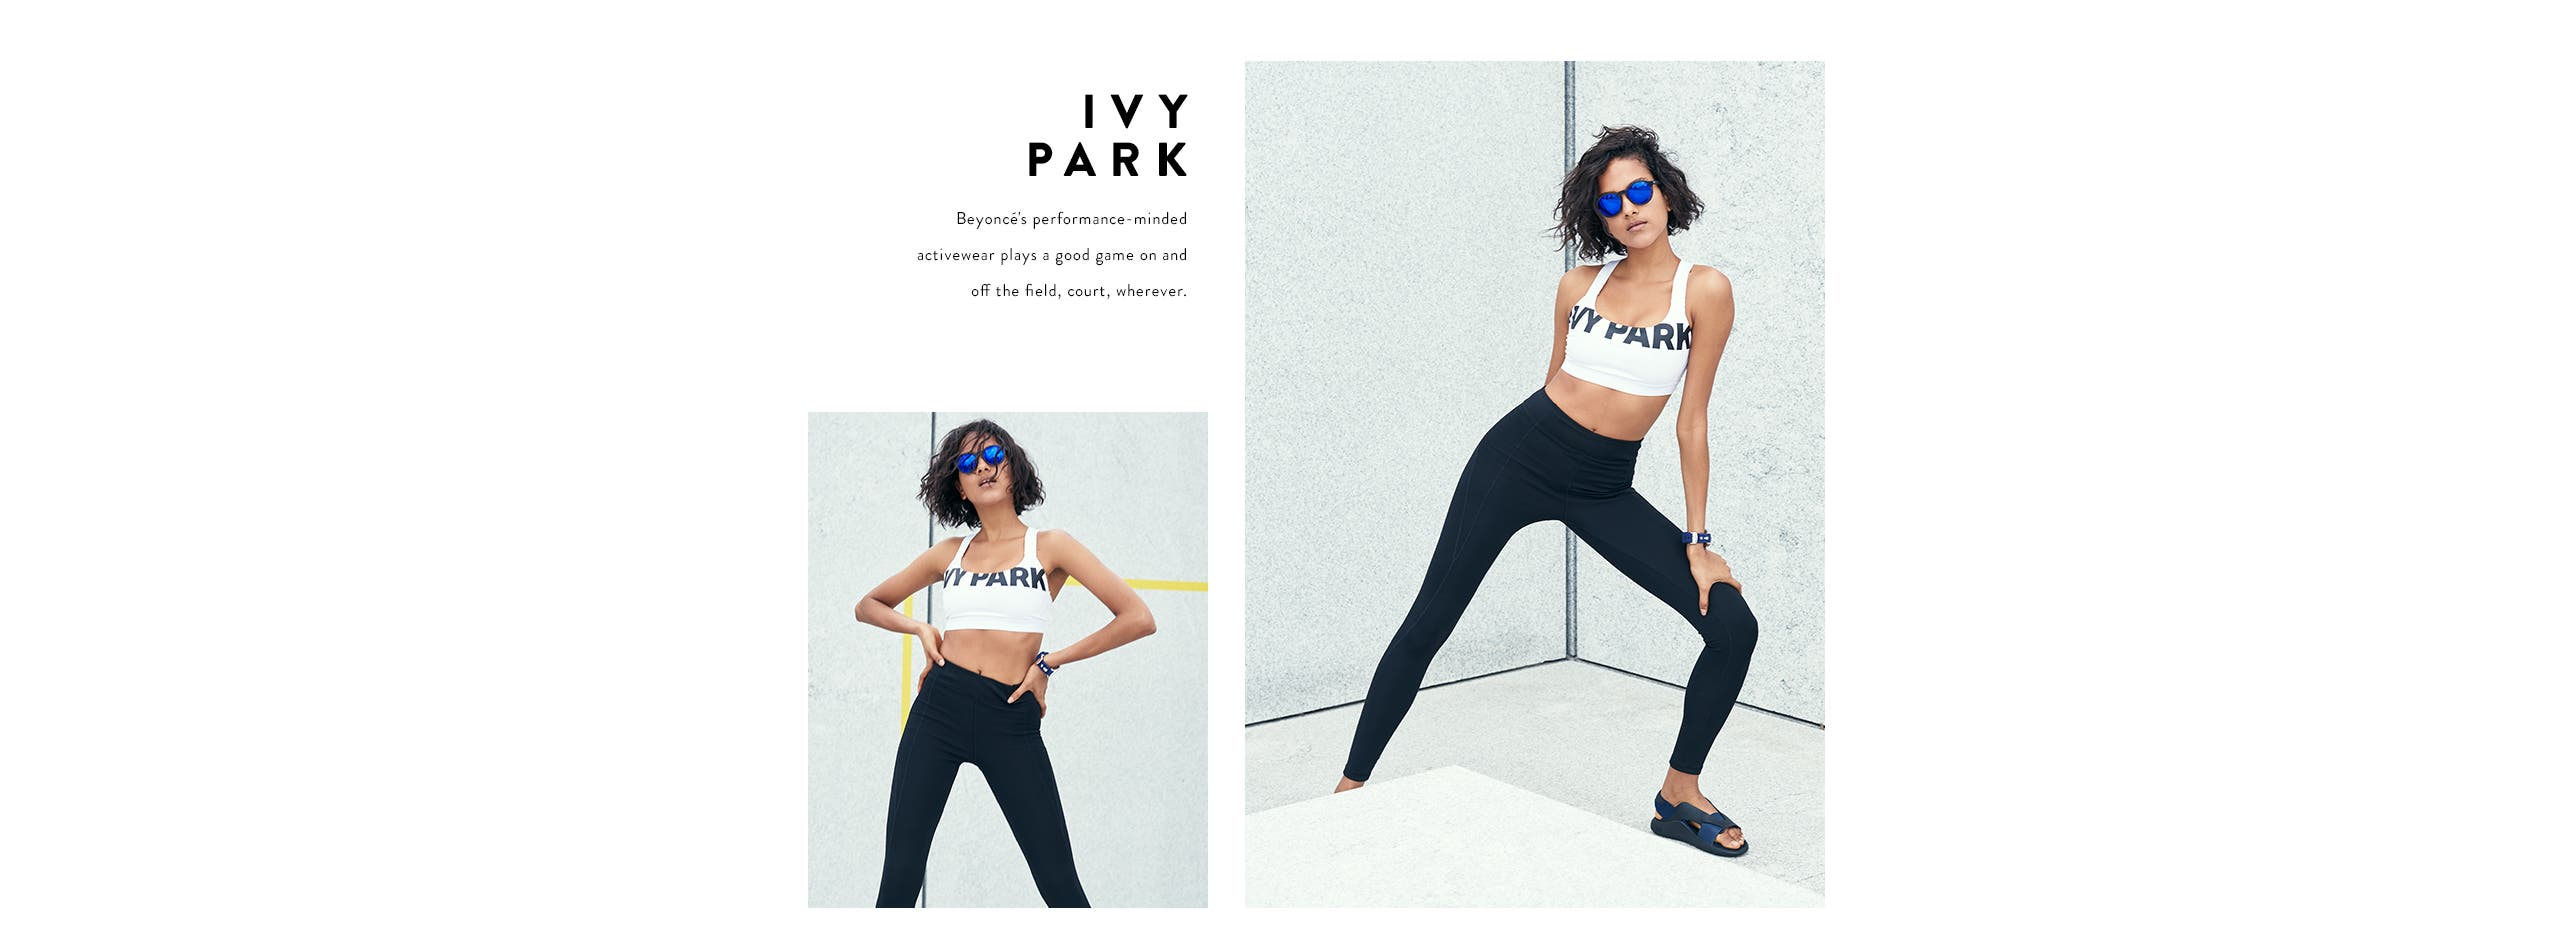 IVY PARK activewear for women.